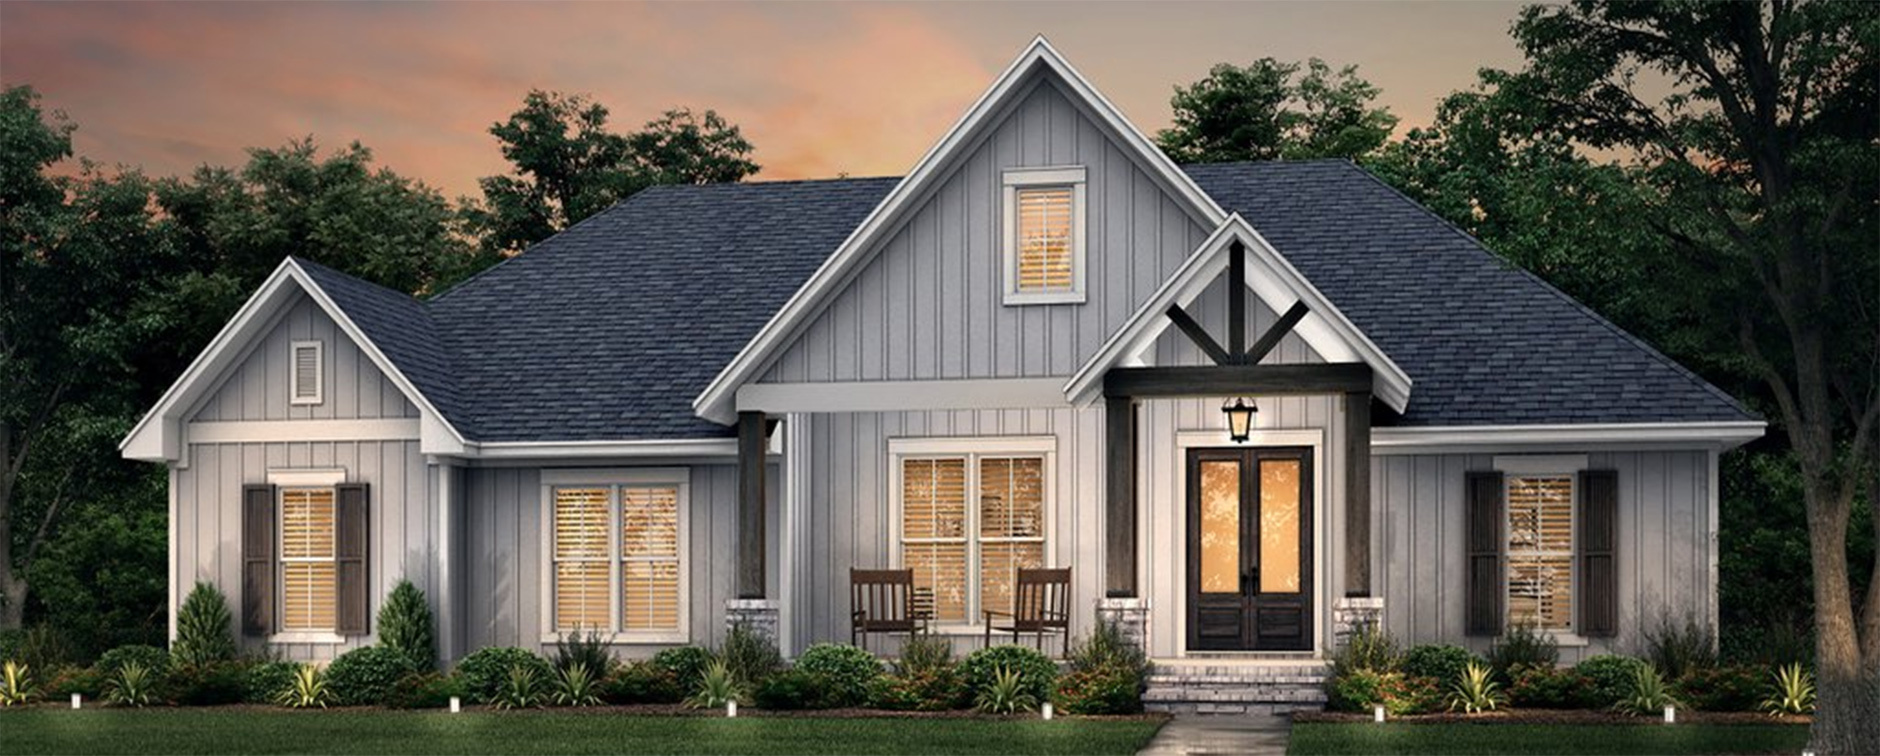 10 Modern Farmhouse Plans with Amazing Curb Appeal